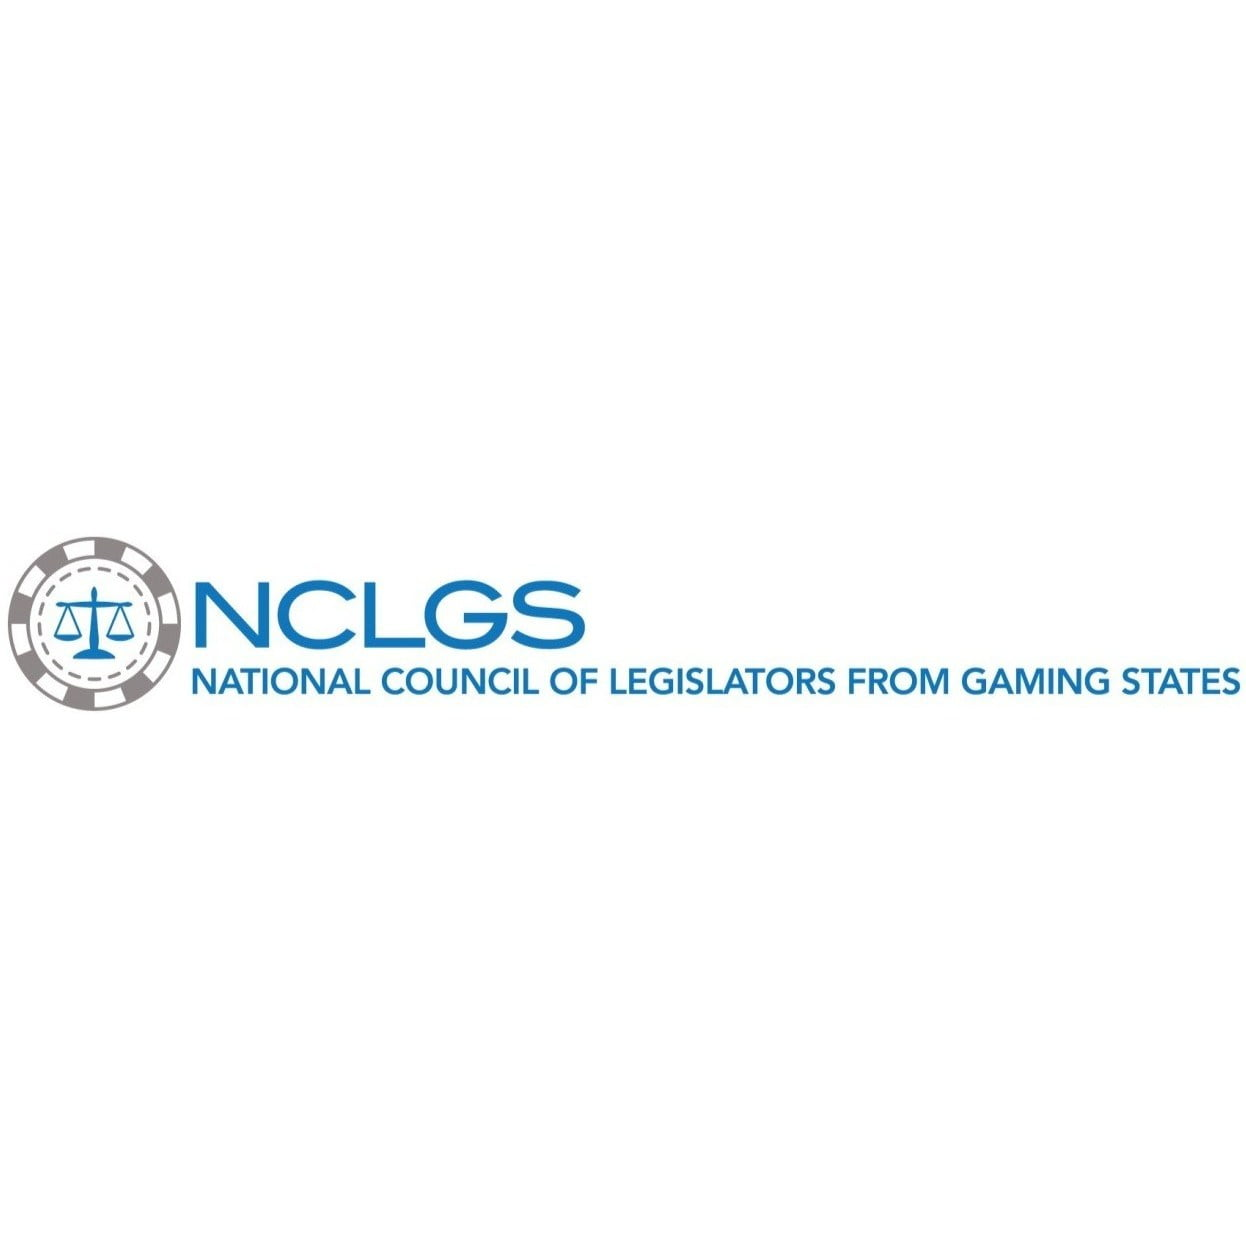 Positive Economic Impact of Tribal Gaming To Be Highlighted By NCLGS